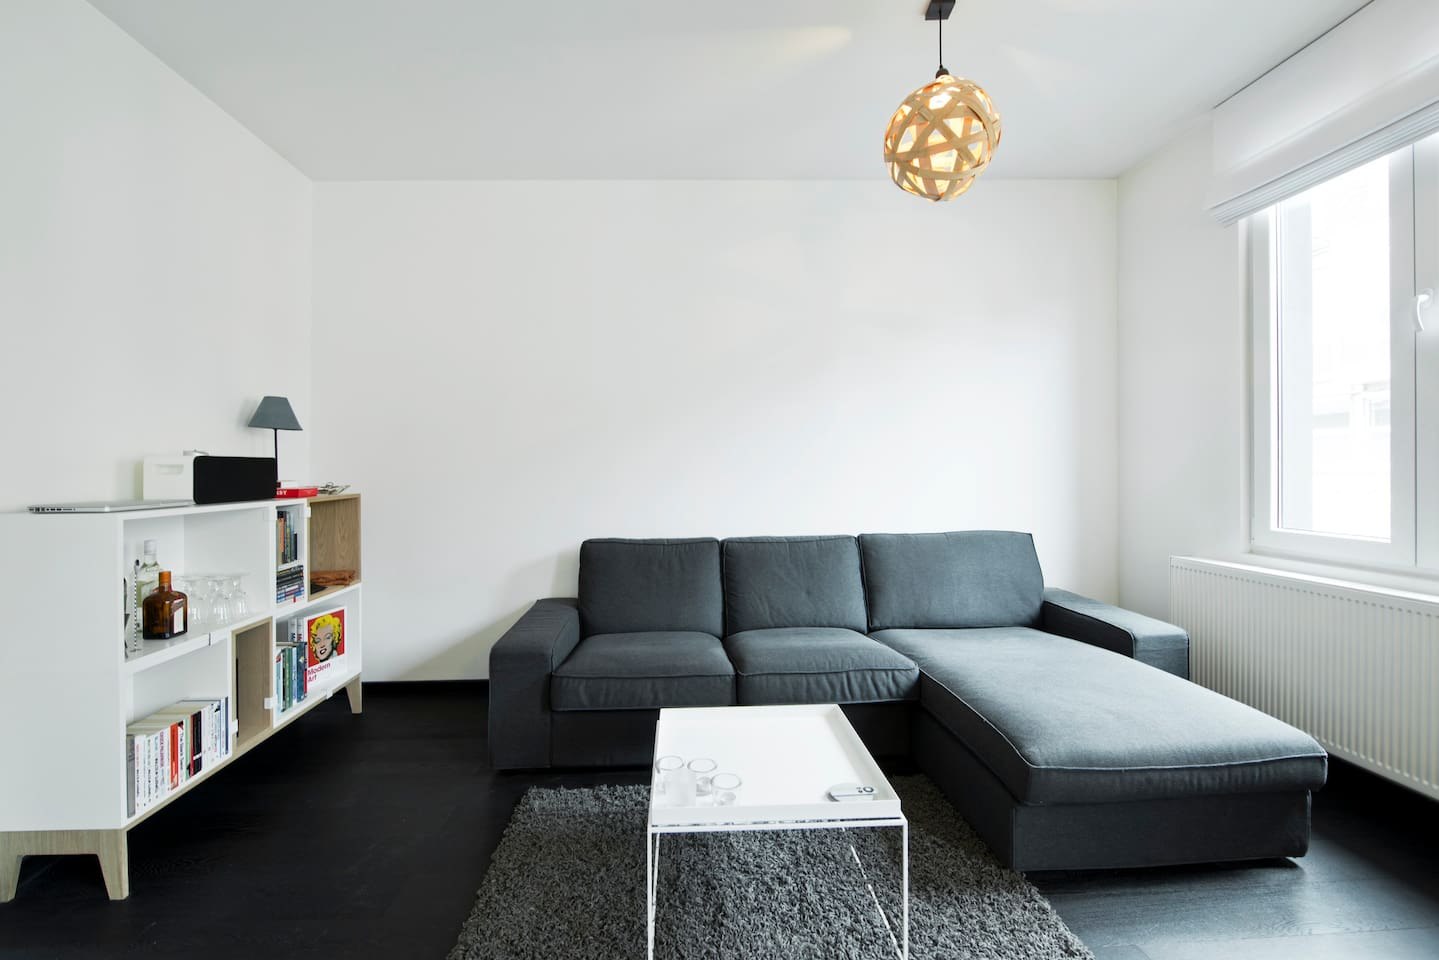 Comfortable sitting area with coffee table, a little bar and library. High quality speaker system with AUX-cable.